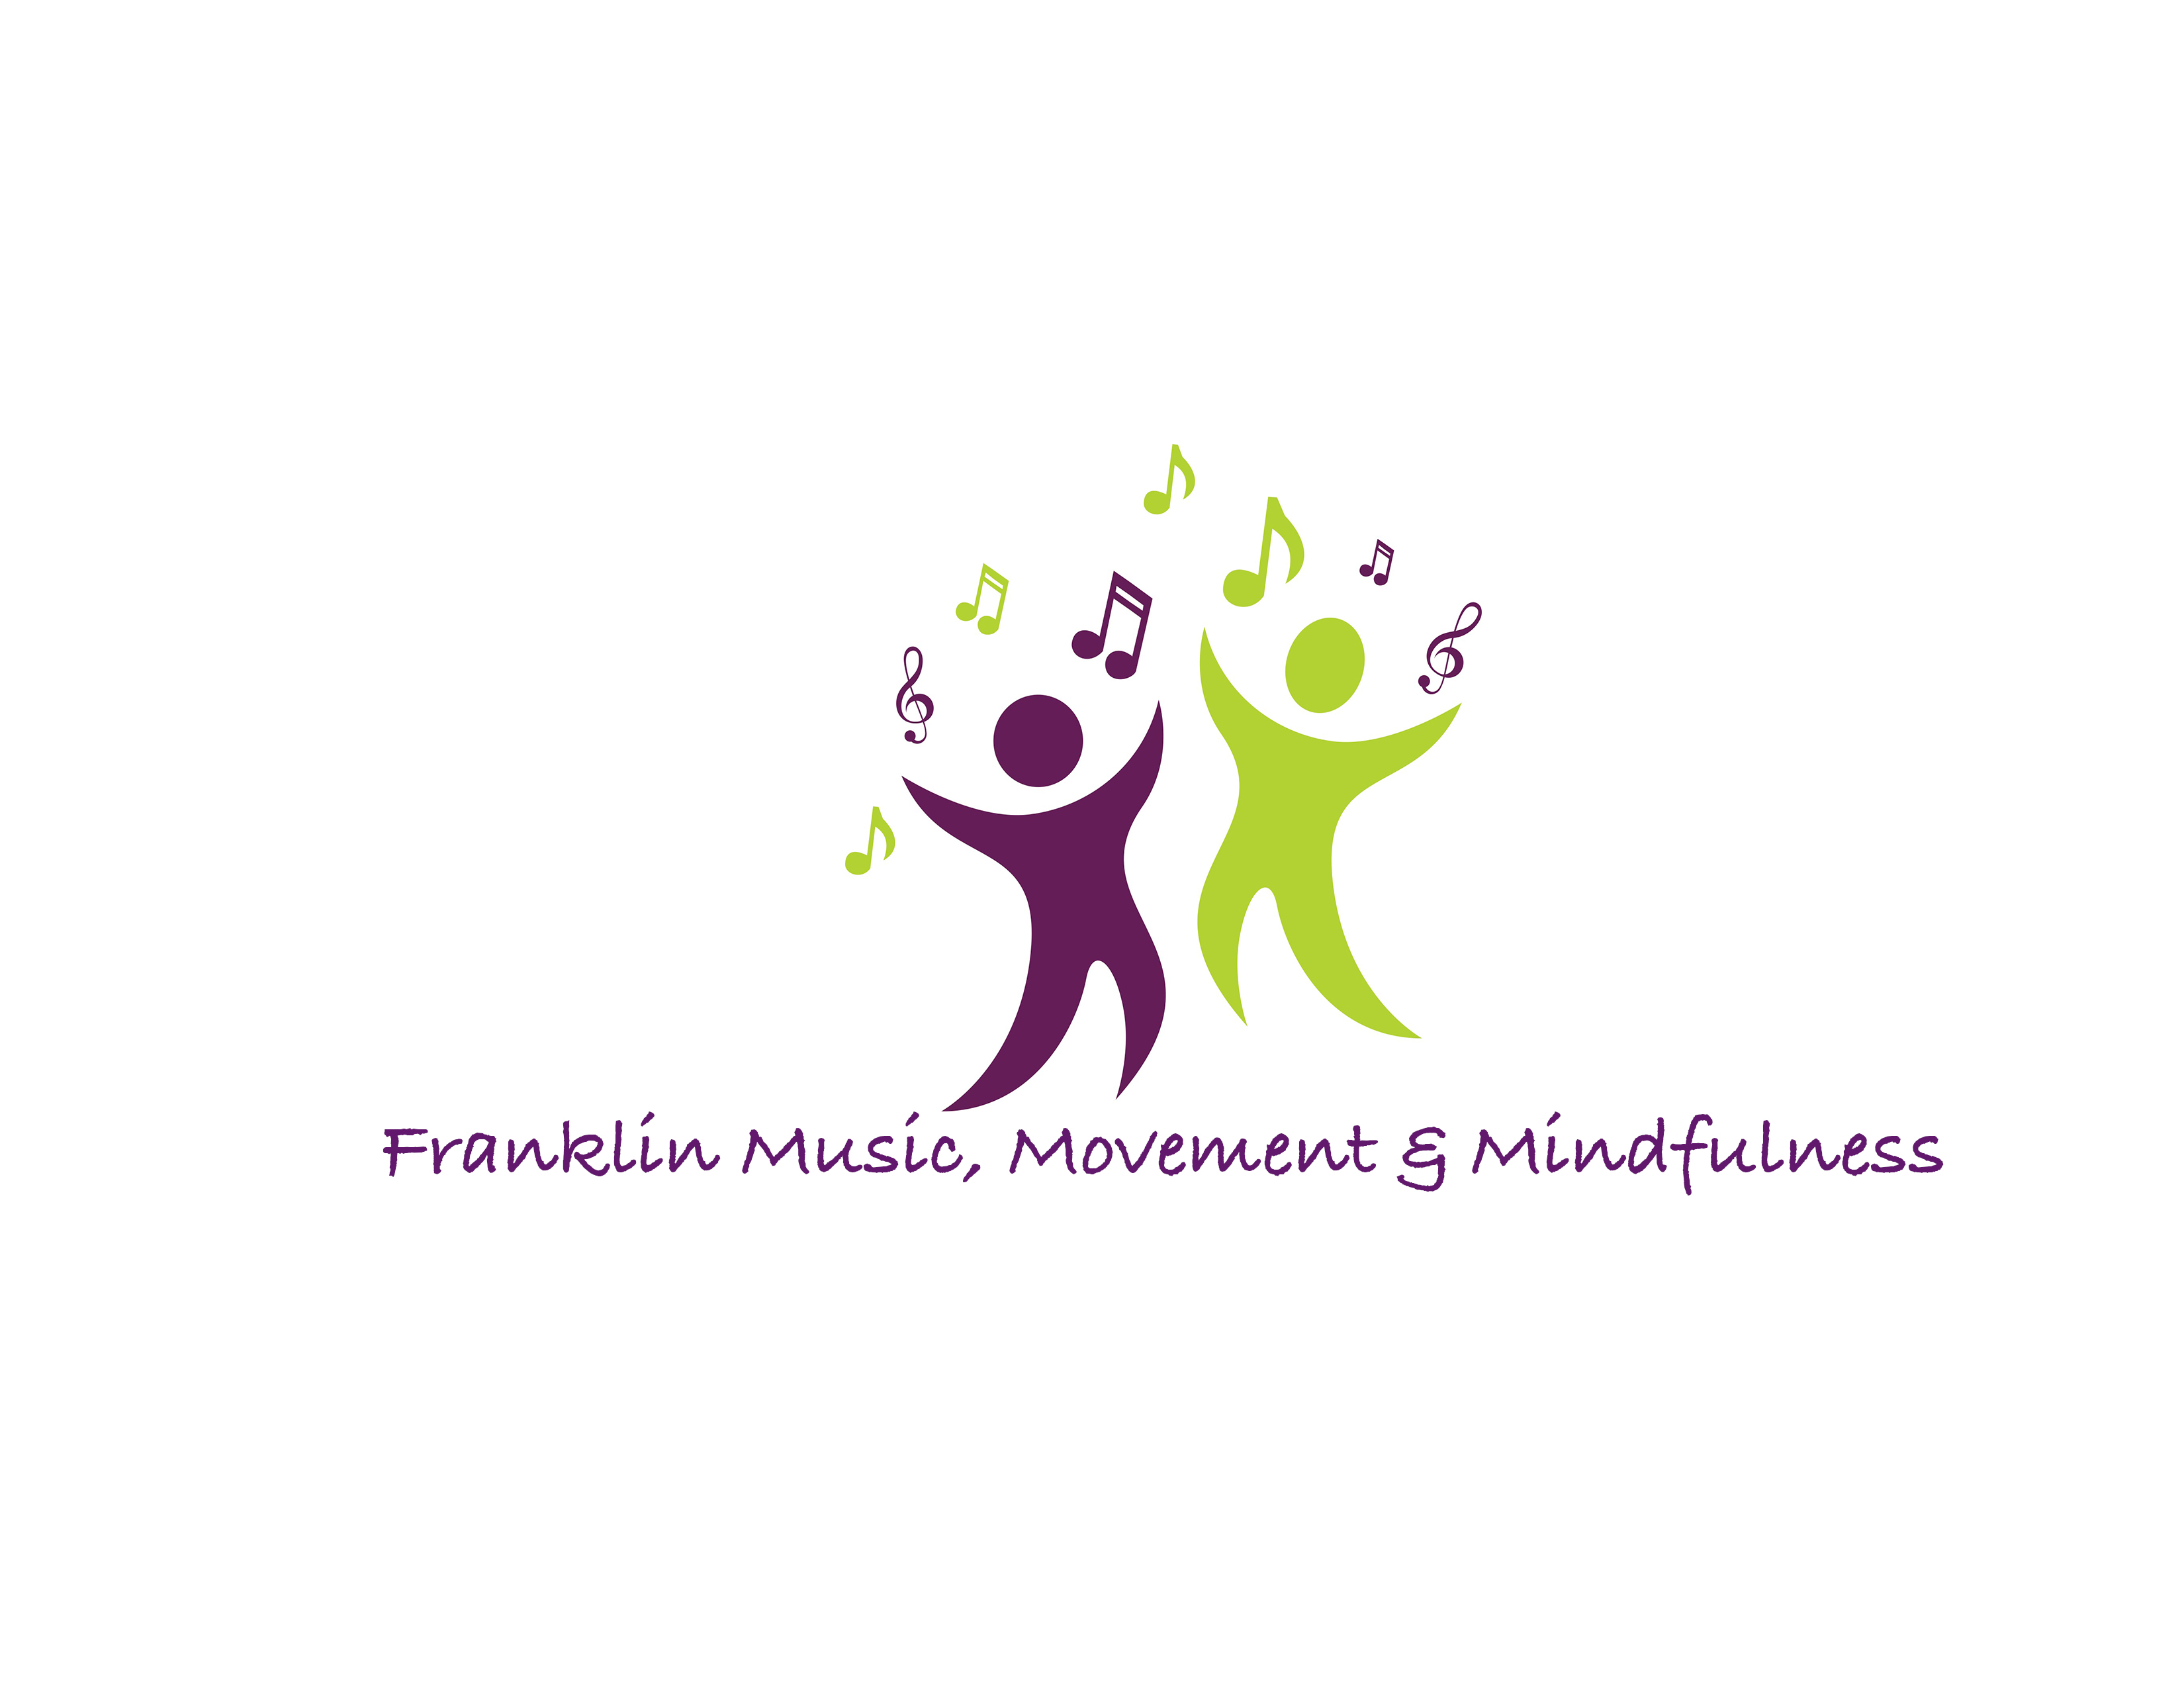 Franklin Music, Movement & MindfulnessPage Under Construction